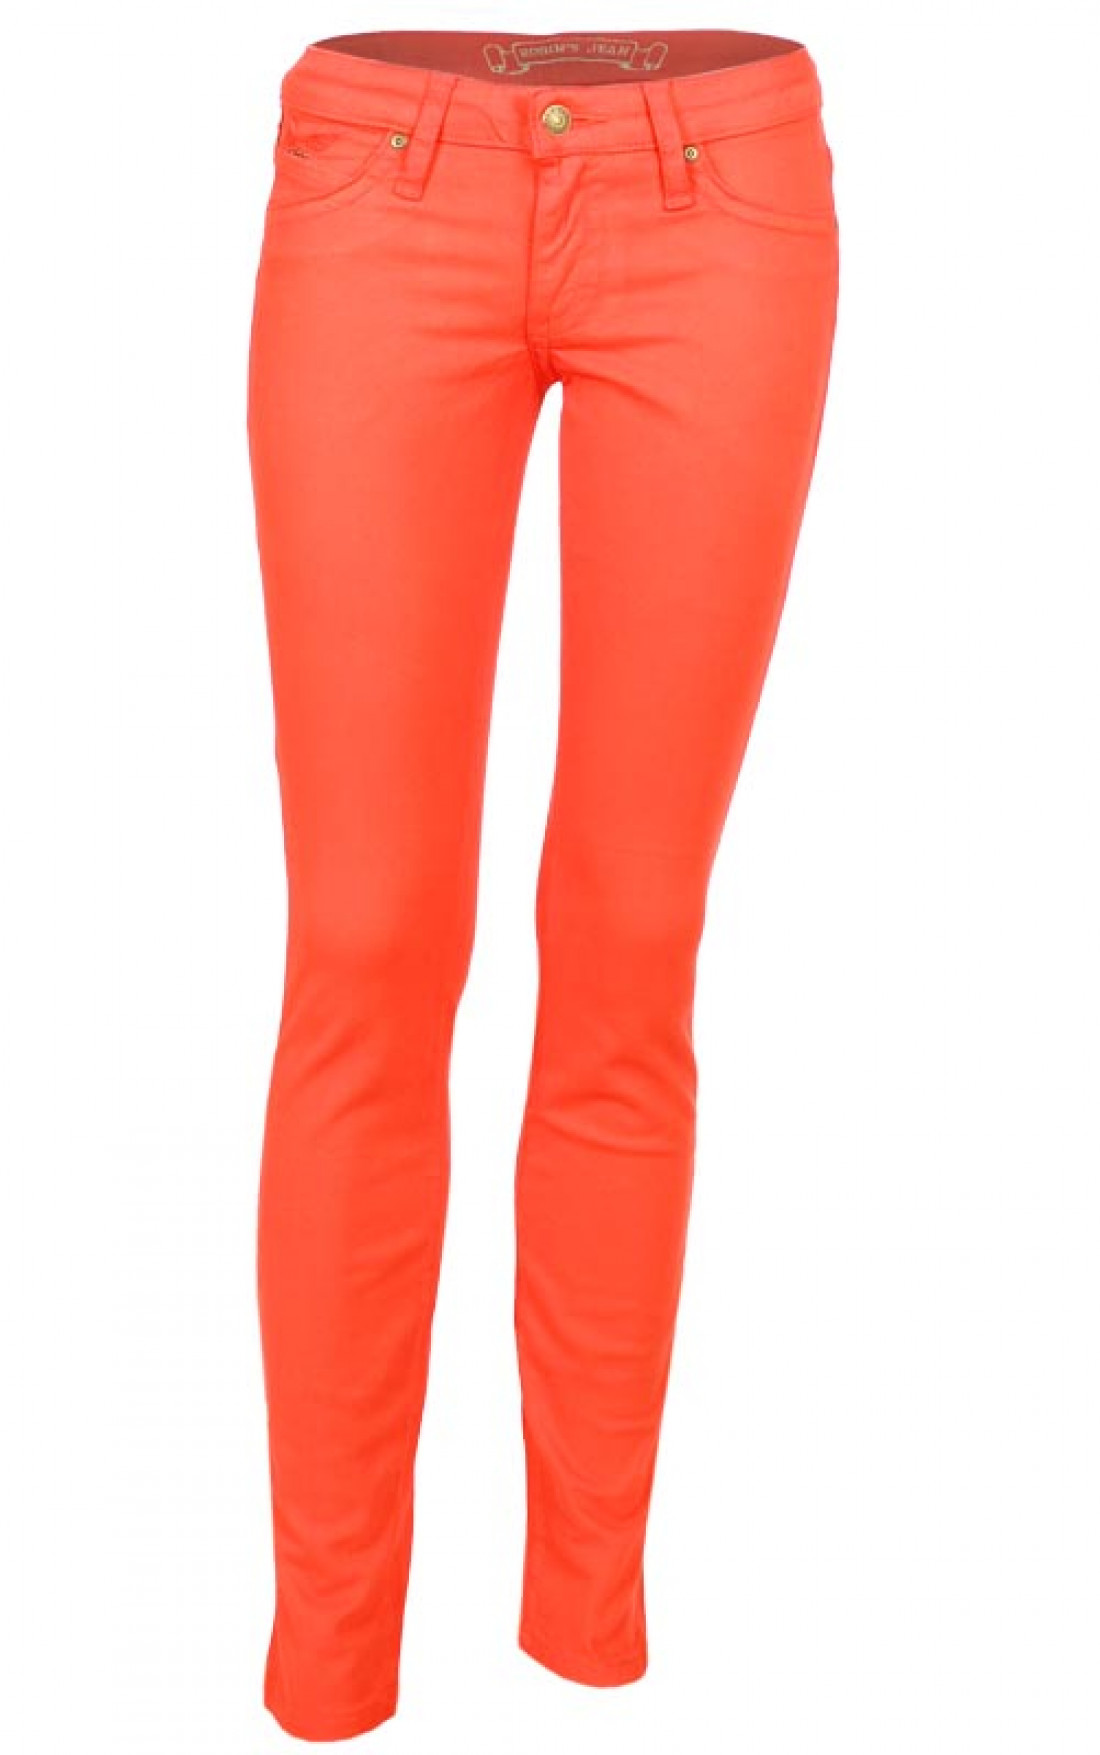 Robins Jeans | Womens Coloured Jeans Orange | Boudi UK